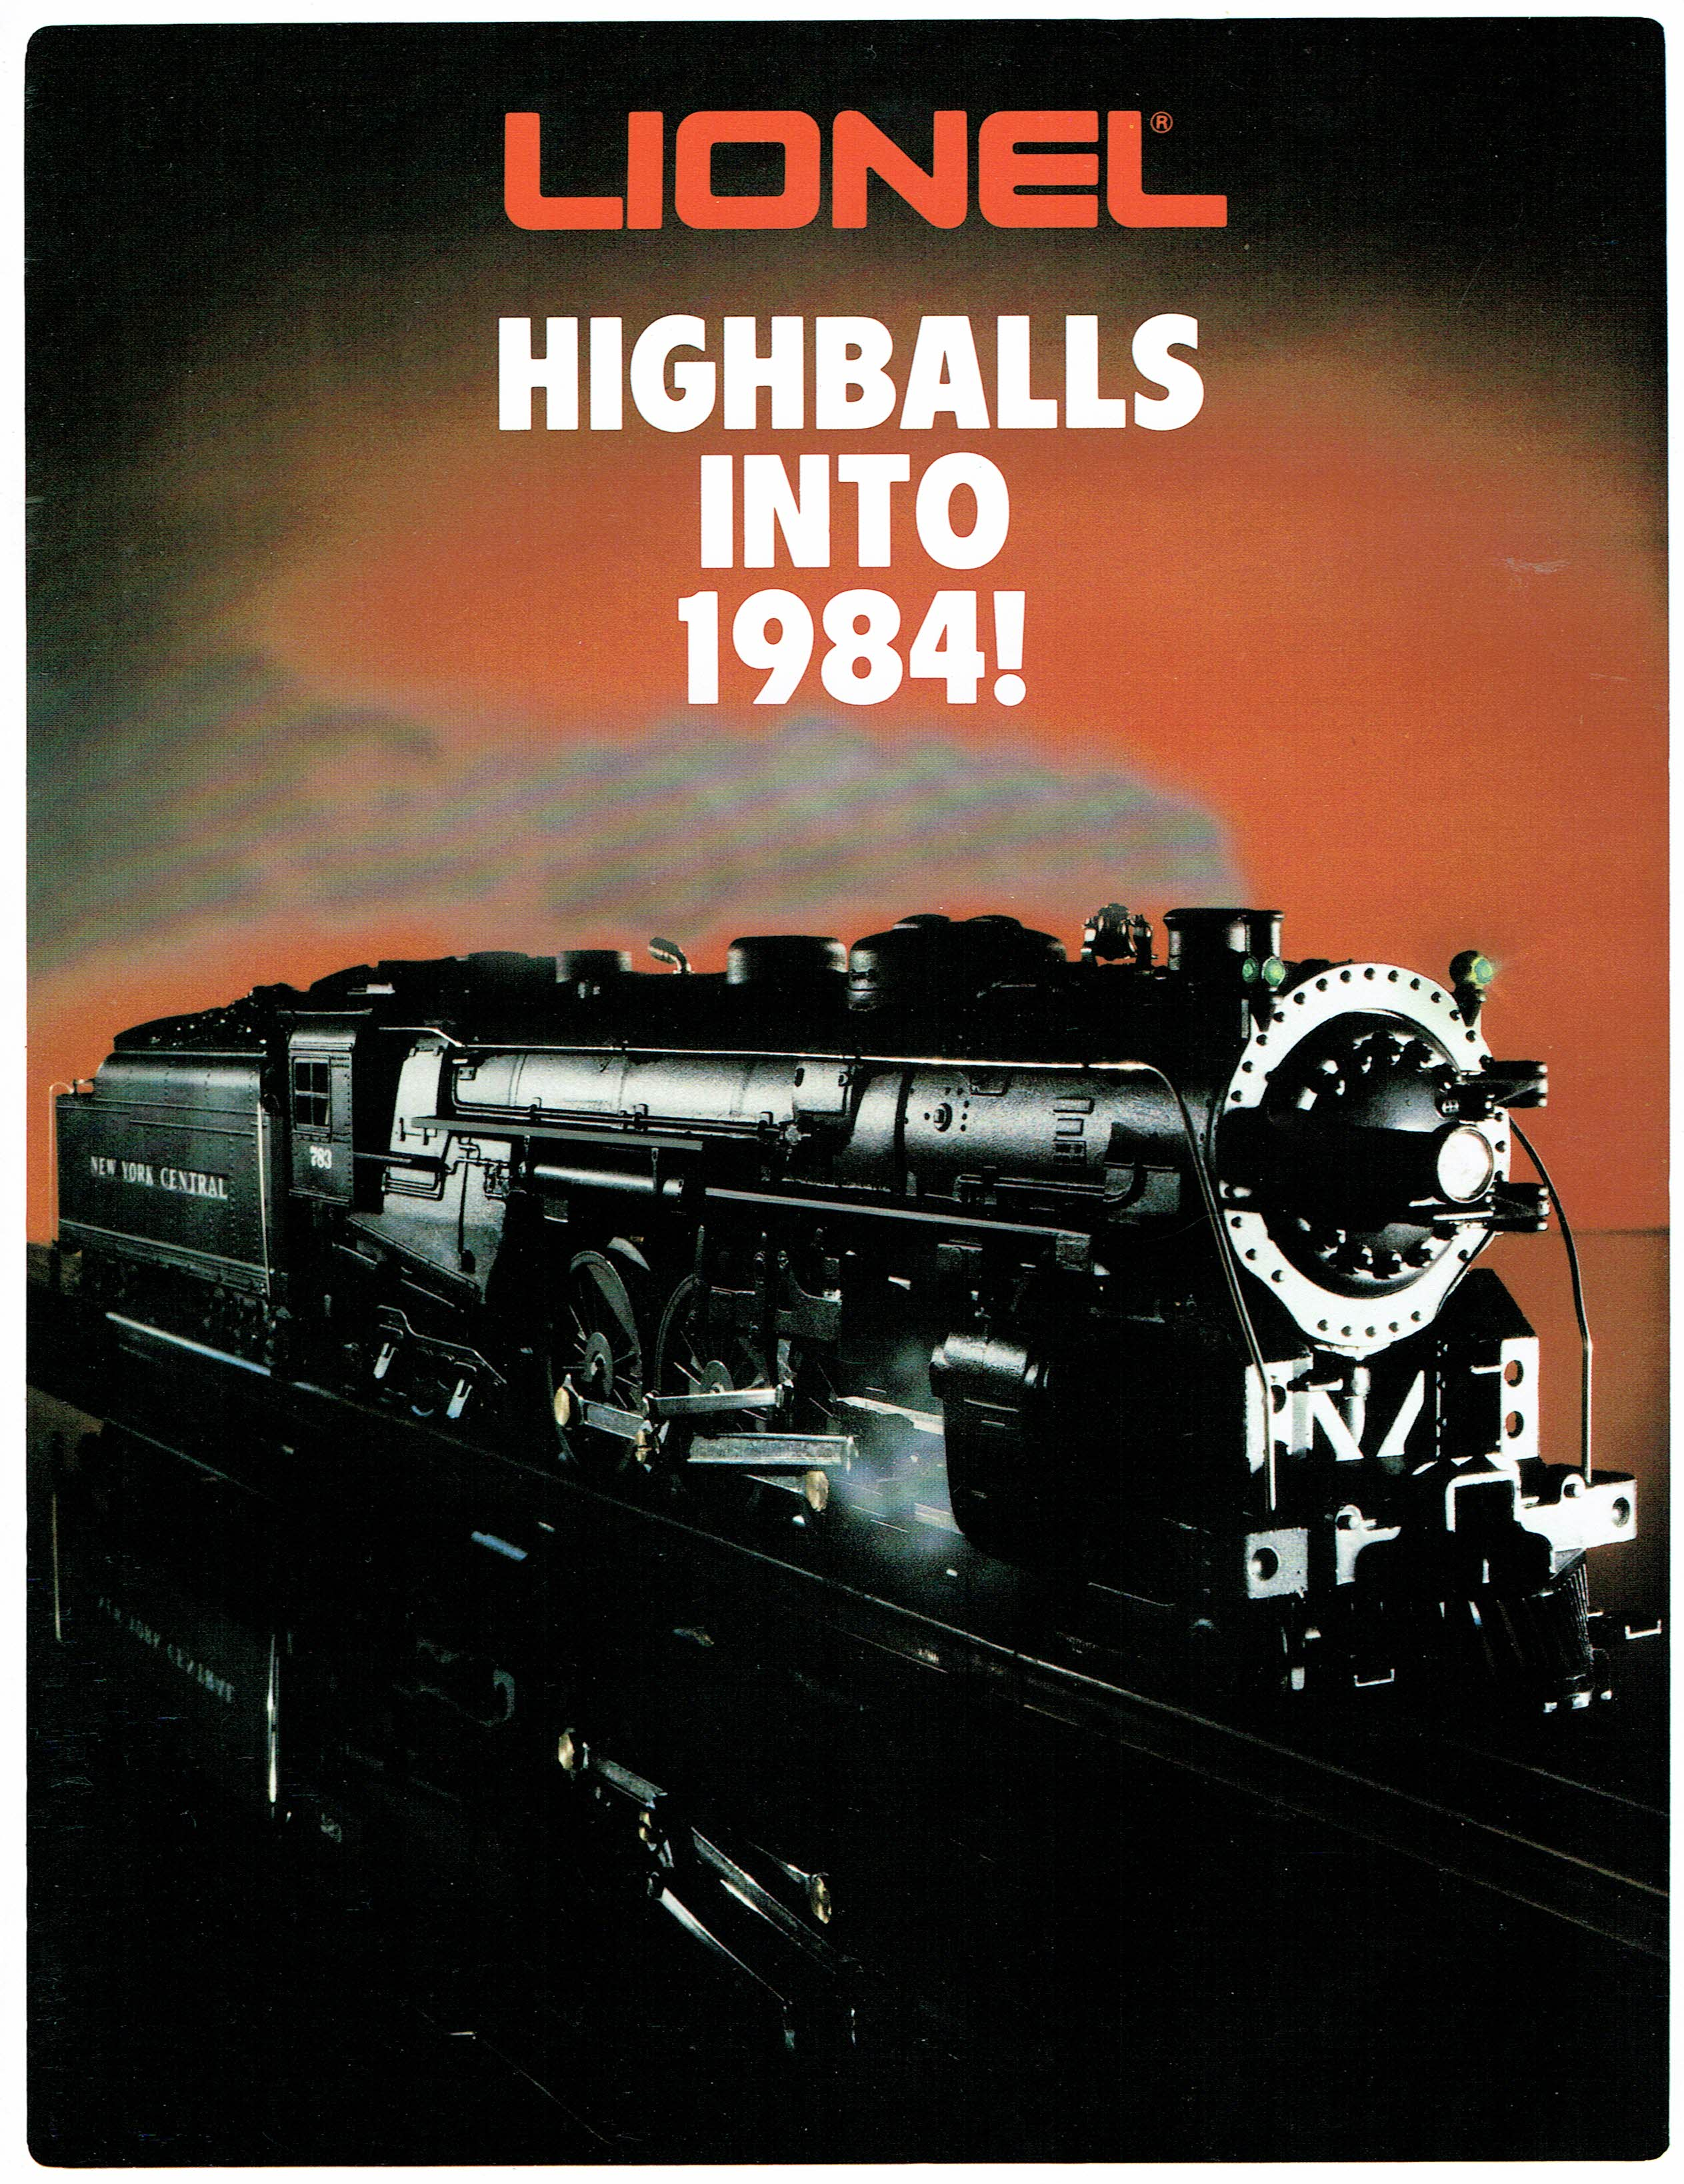 Lionel Highballs Into 1984! Flier image